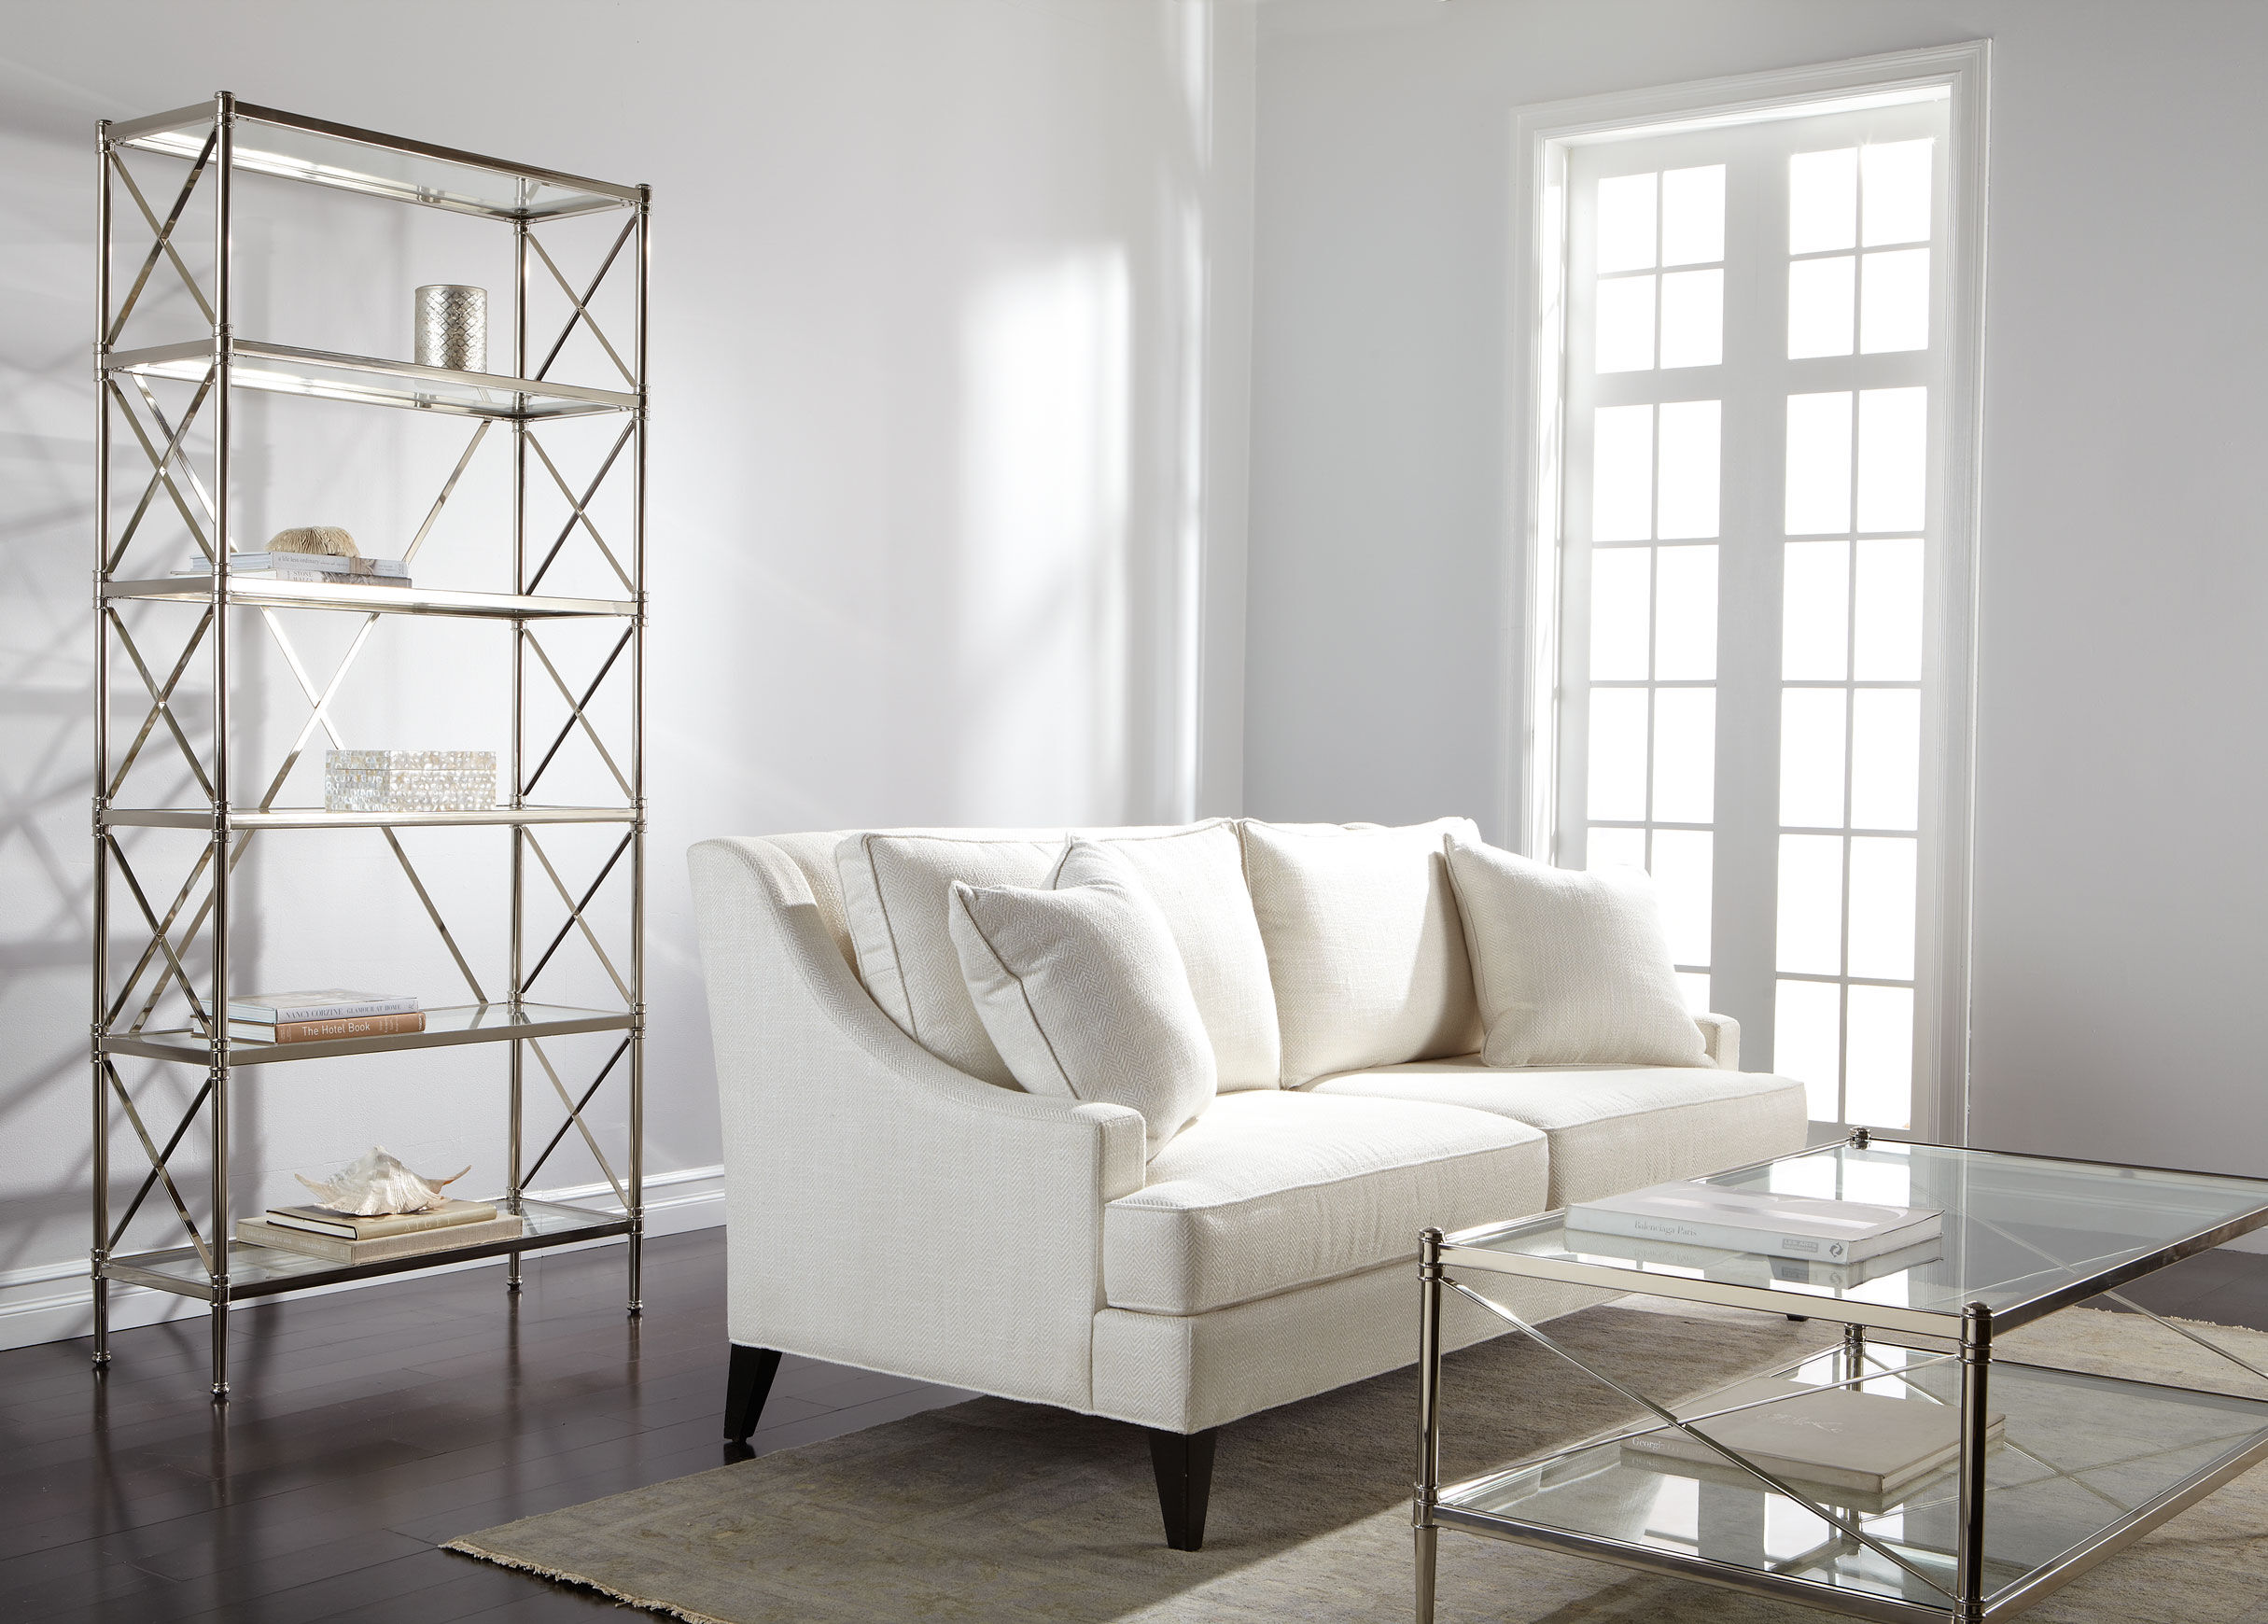 en allen featured ca classics bookcases by front products british null shop ethan collection